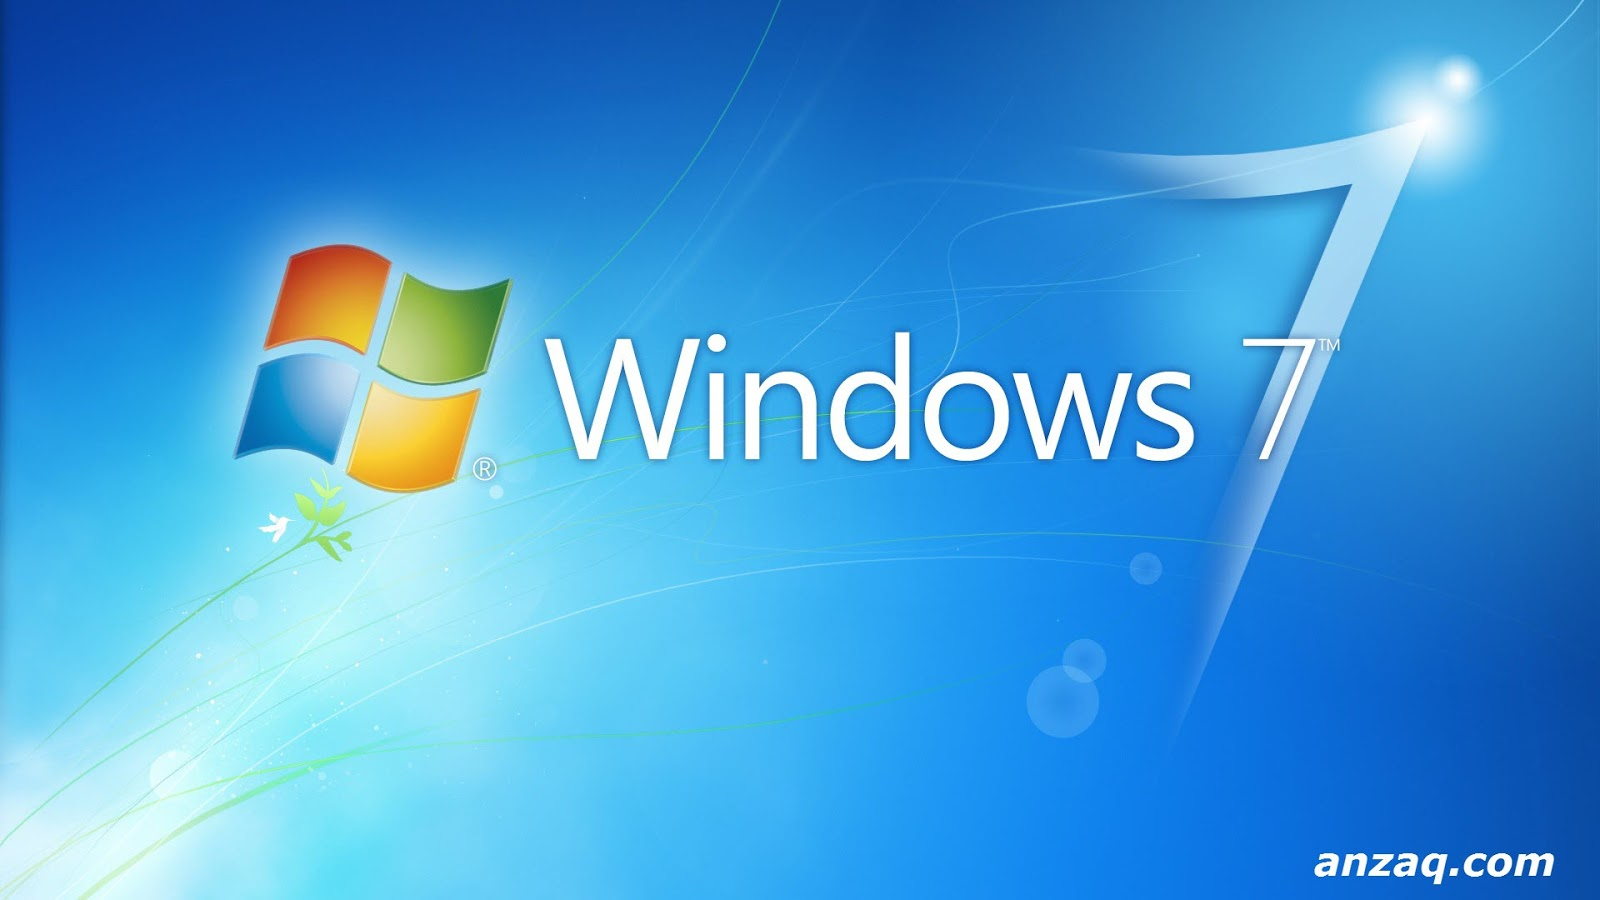 download windows 7 using product key